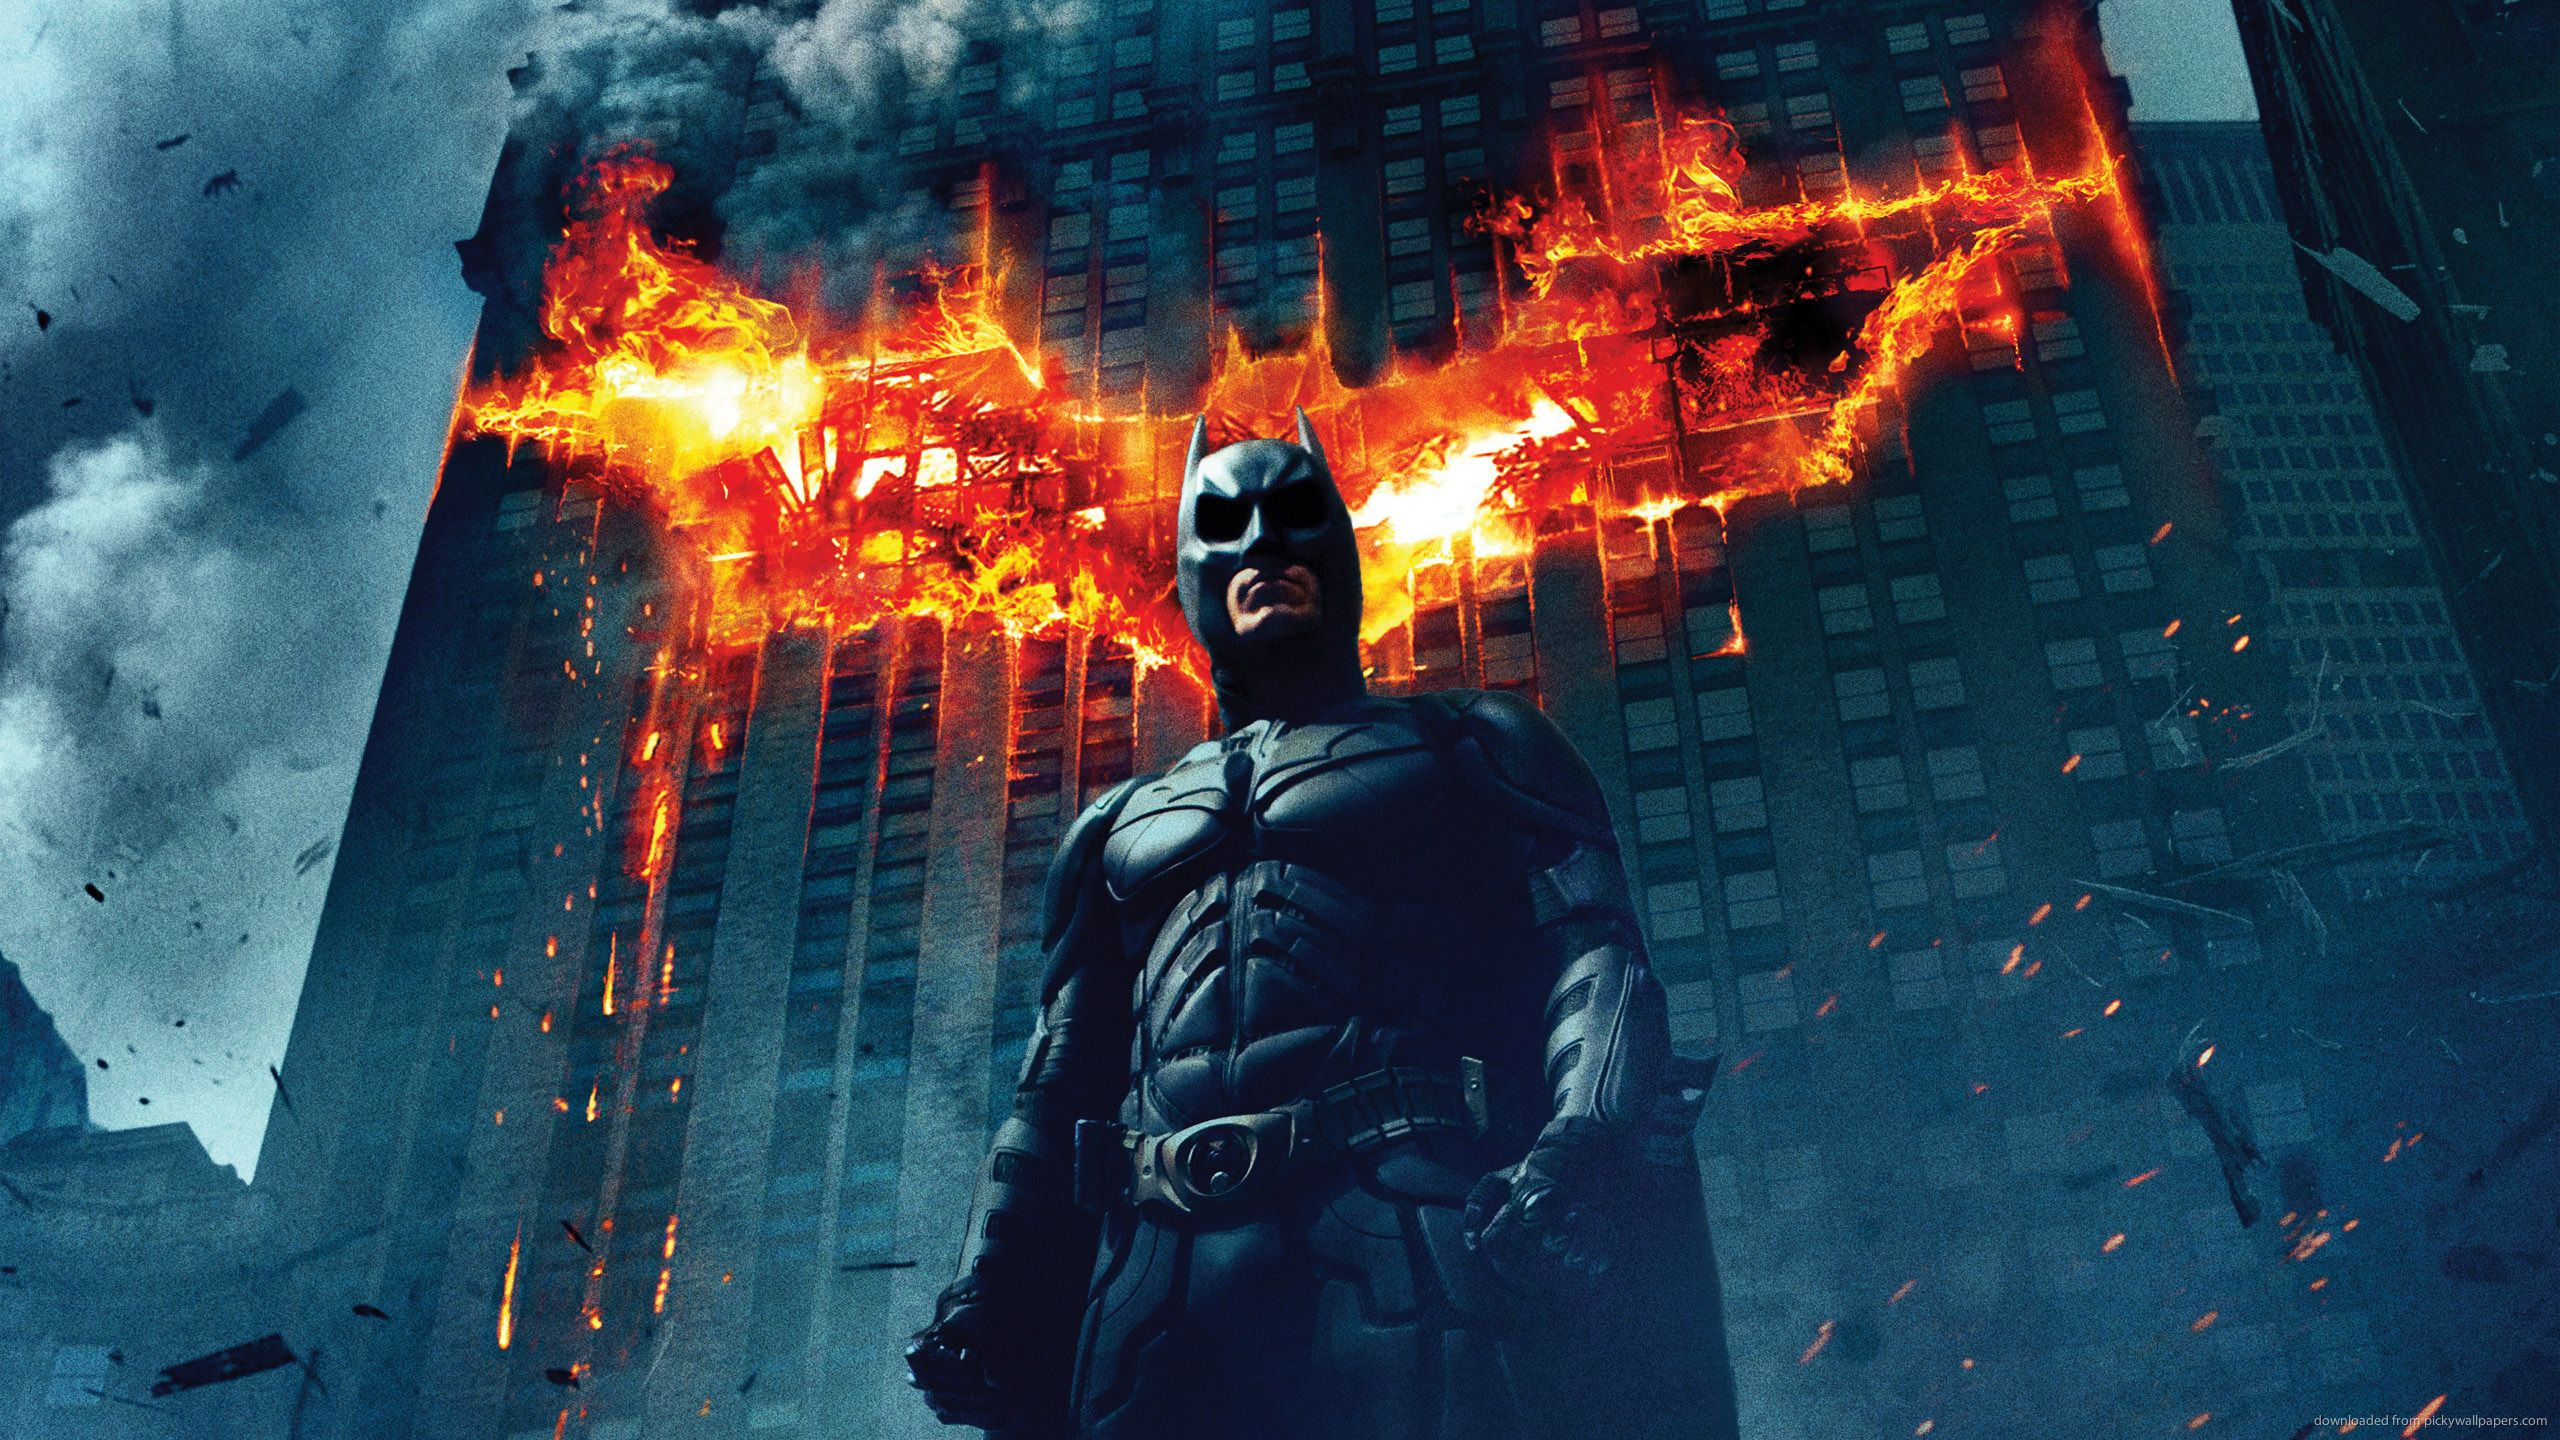 Batman Movies in Order: How Many Movies Are There and How to Watch Them?